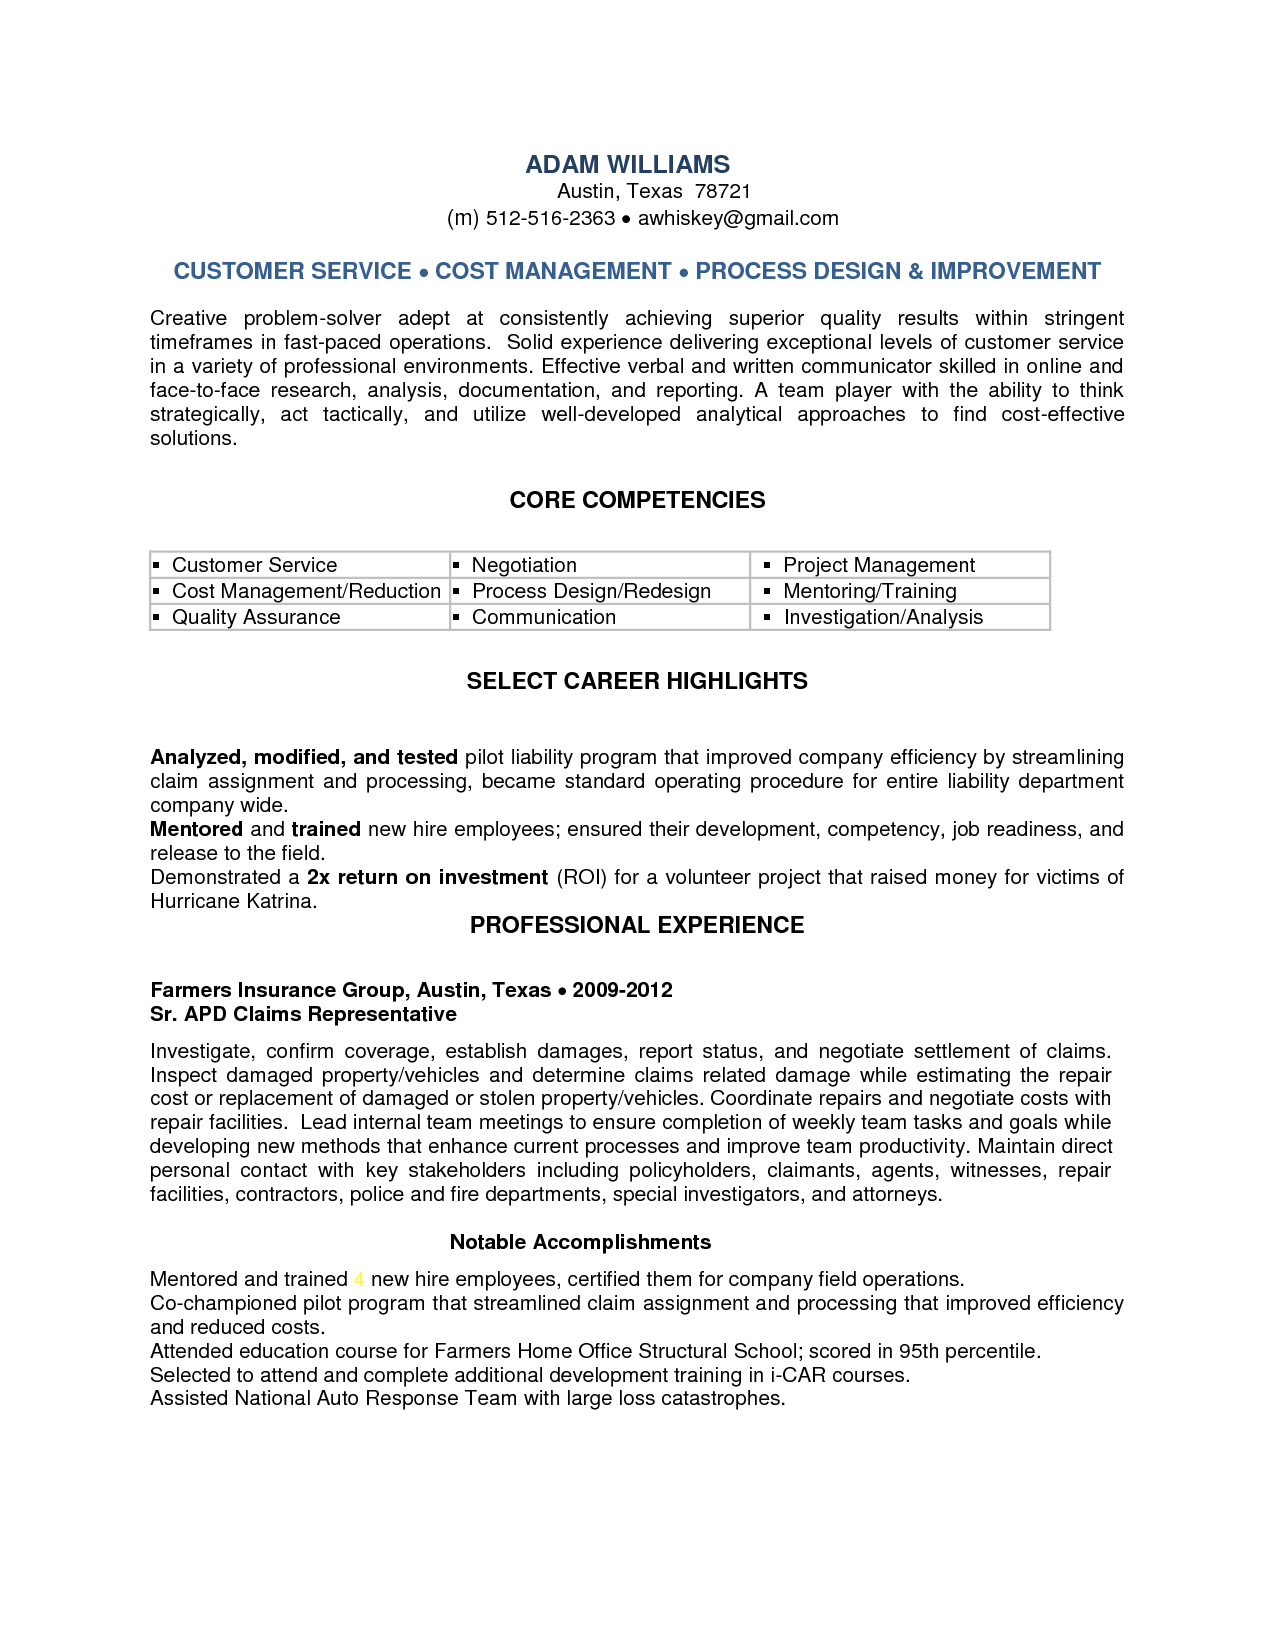 Sample Csr Resume Insurance Claims Representative Resume